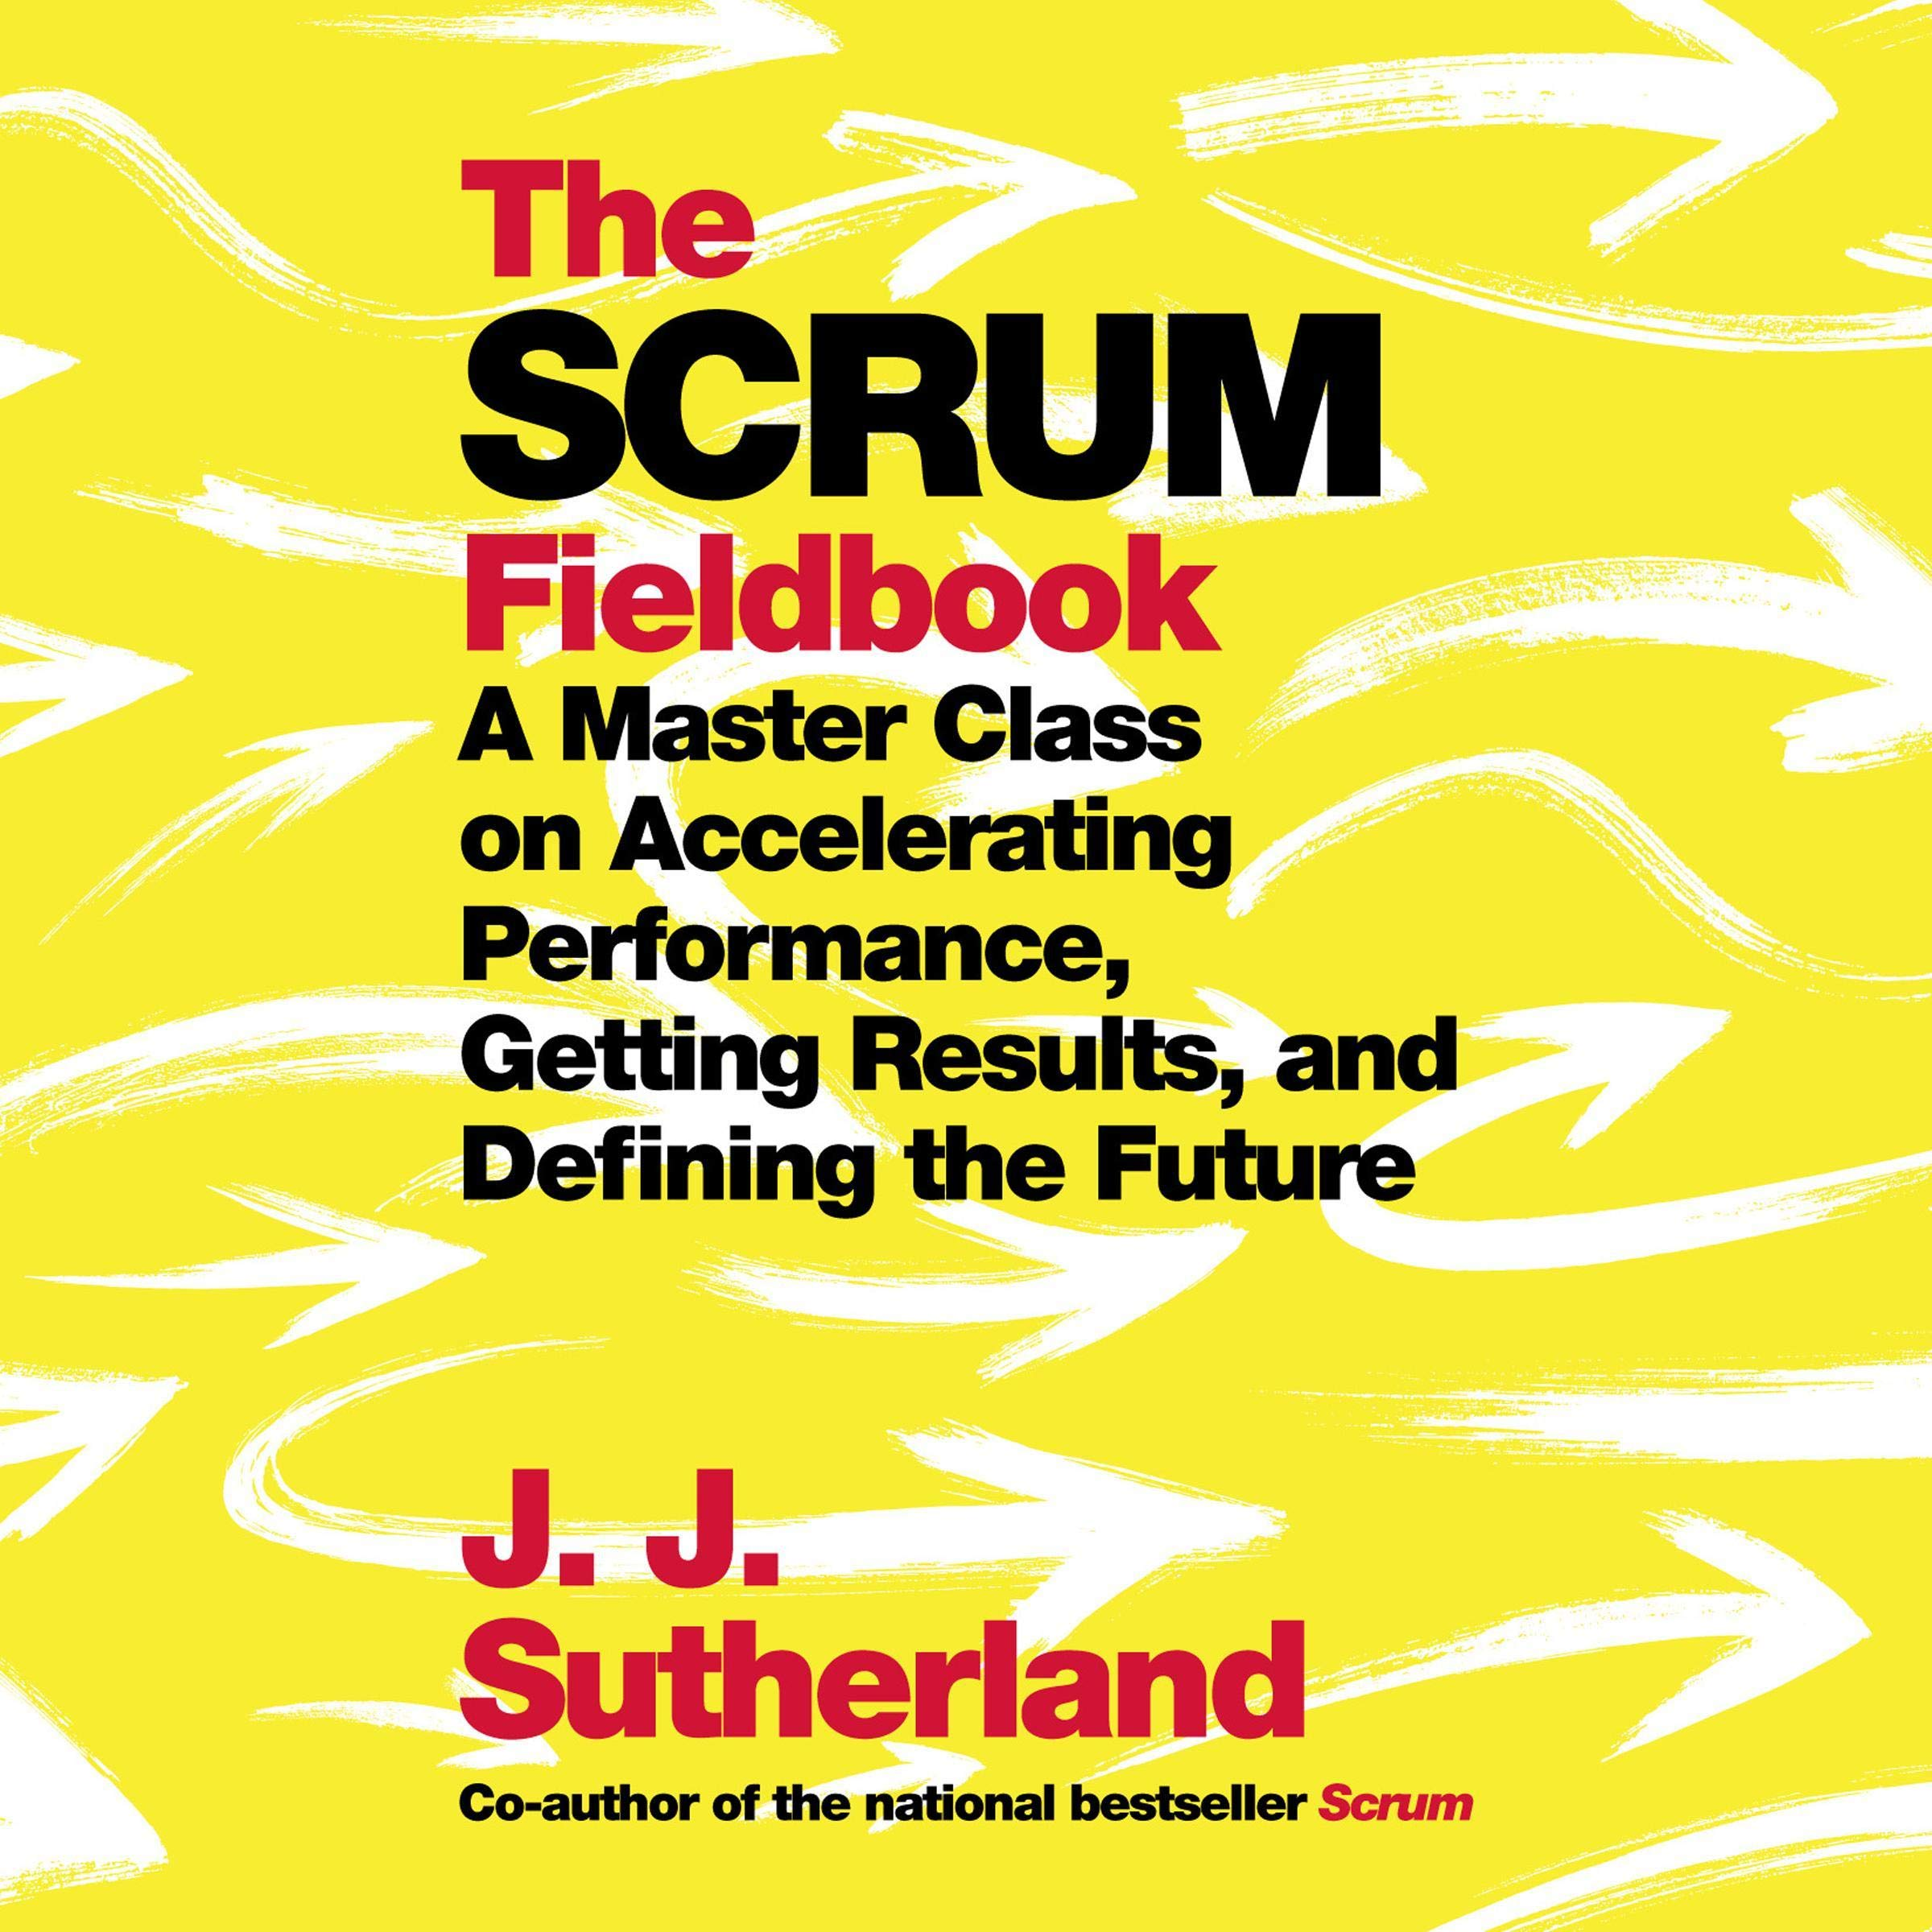 Download The Scrum Fieldbook: A Master Class On Accelerating Performance, Getting Results, And Defining The Future 